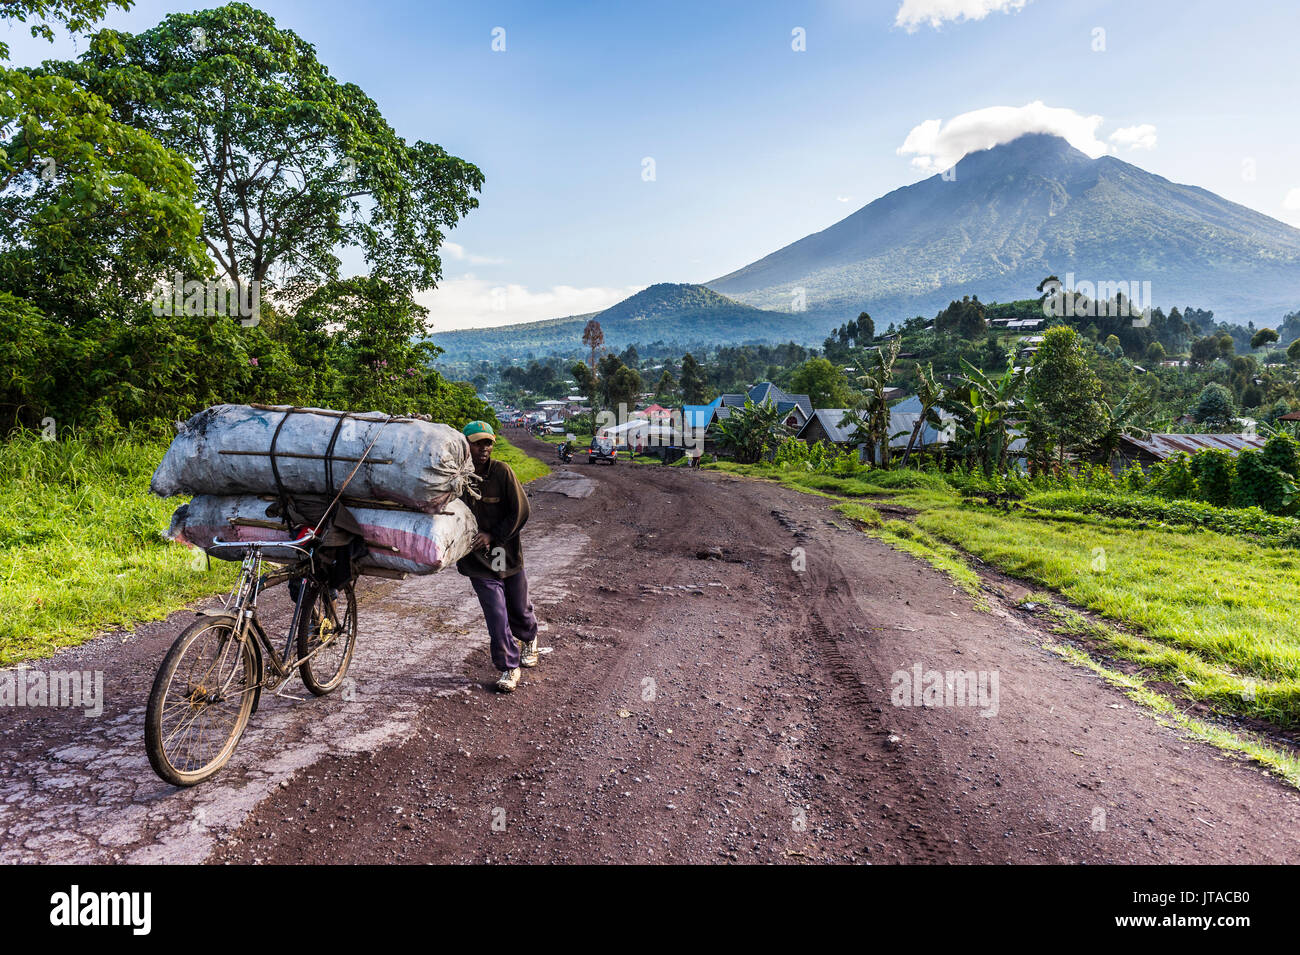 Man carrying a lot of bags on a bicycle, Virunga National Park, Democratic Republic of the Congo, Africa - Stock Image